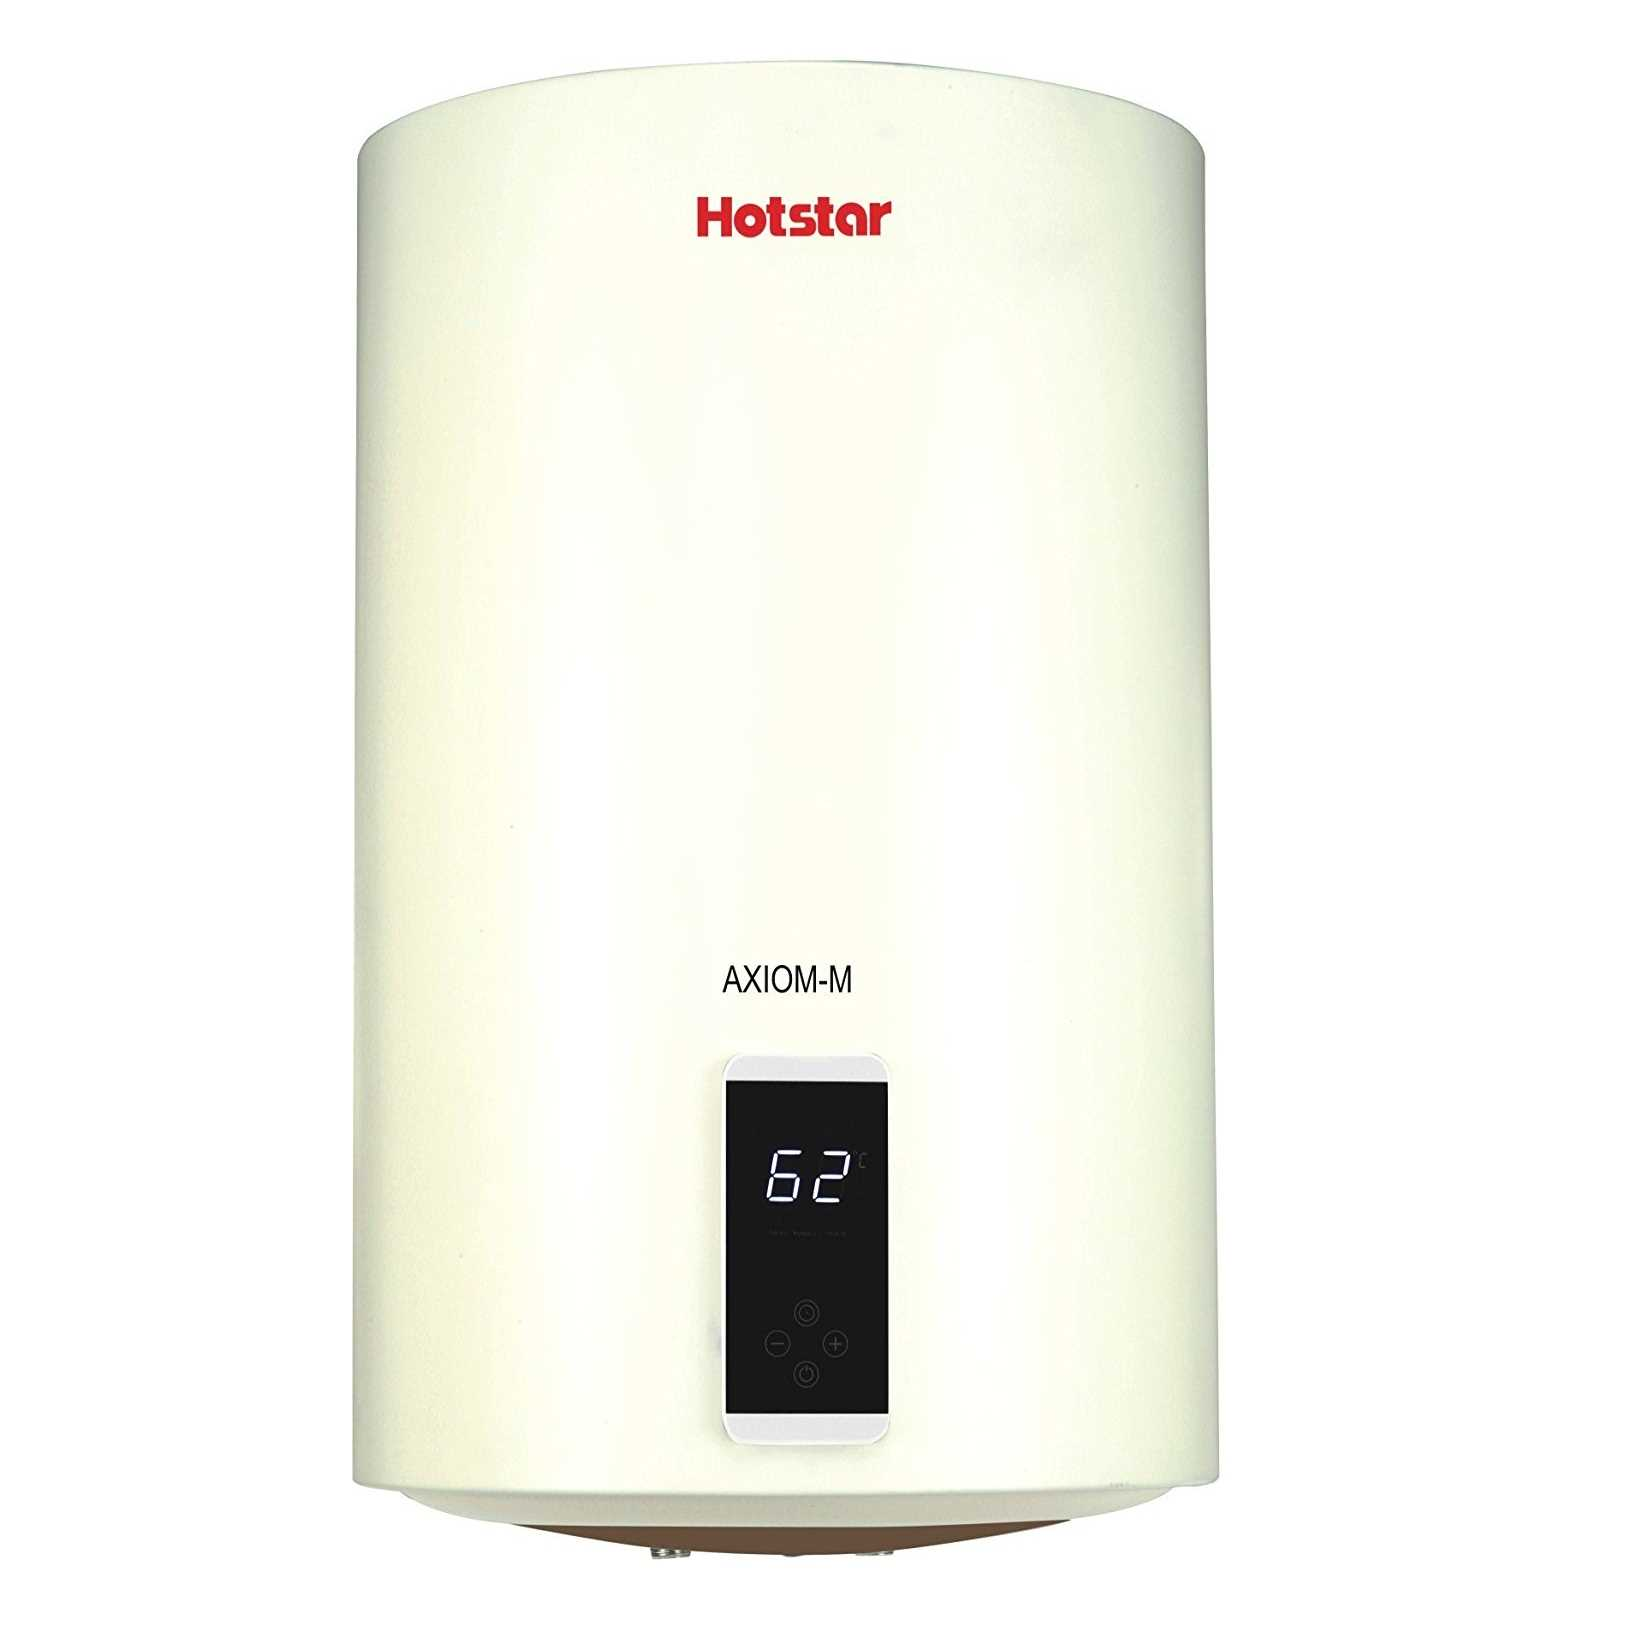 Hotstar Axiom-M- IR15 15 Litre Storage Water Heater